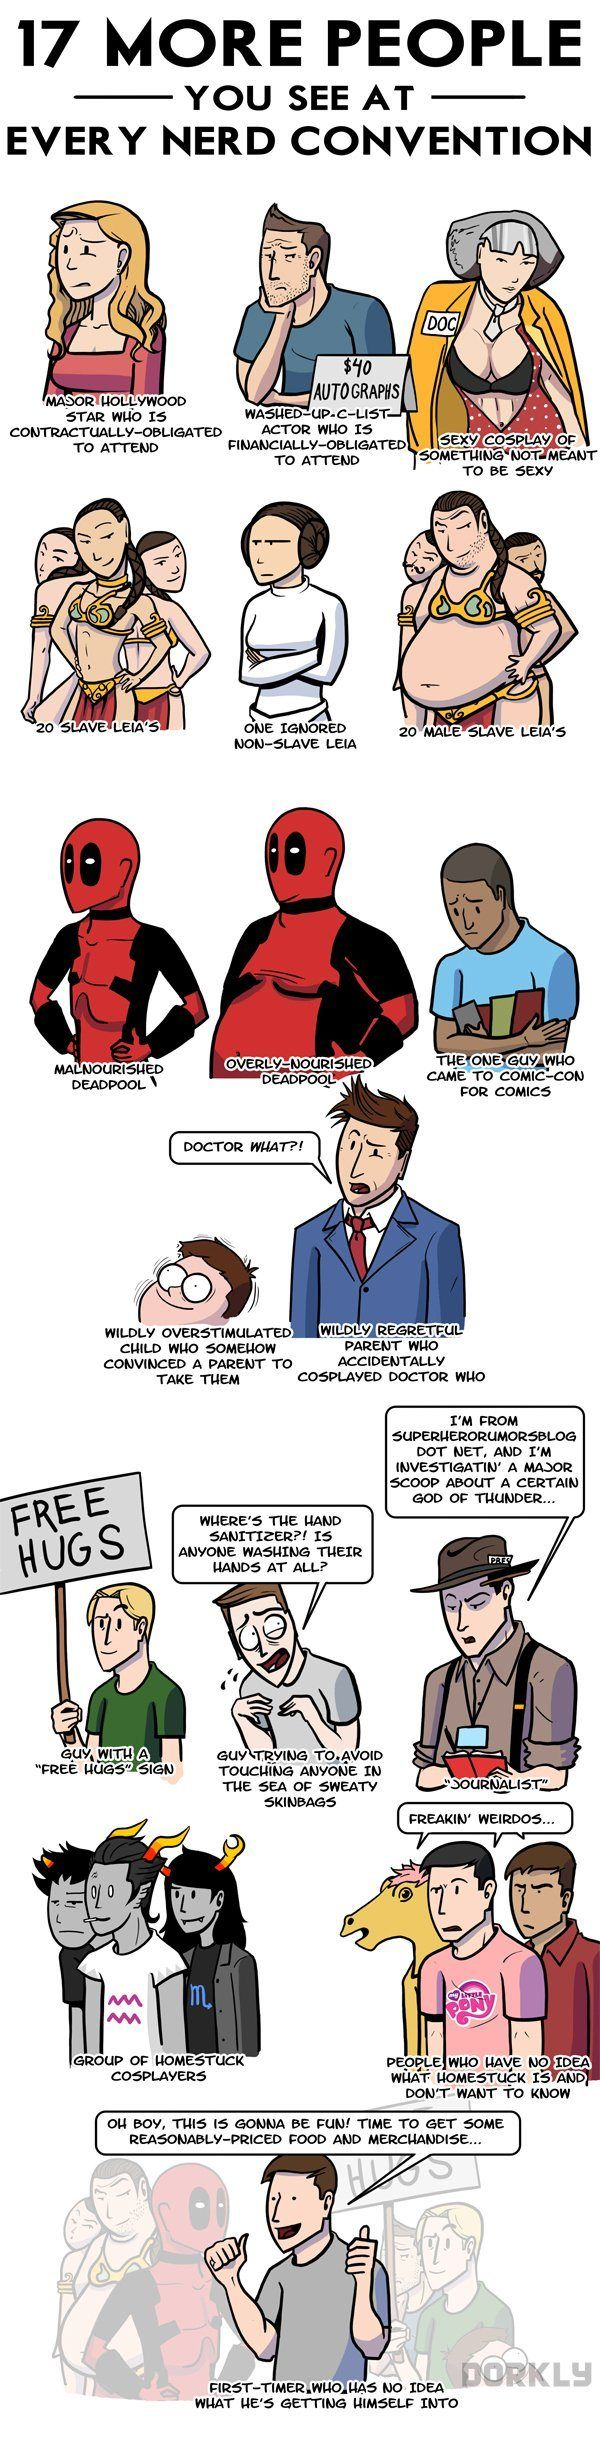 people_you_meet_at_nerd_conventions -- haha that last one is going to be me in May! So excited!!! Lol